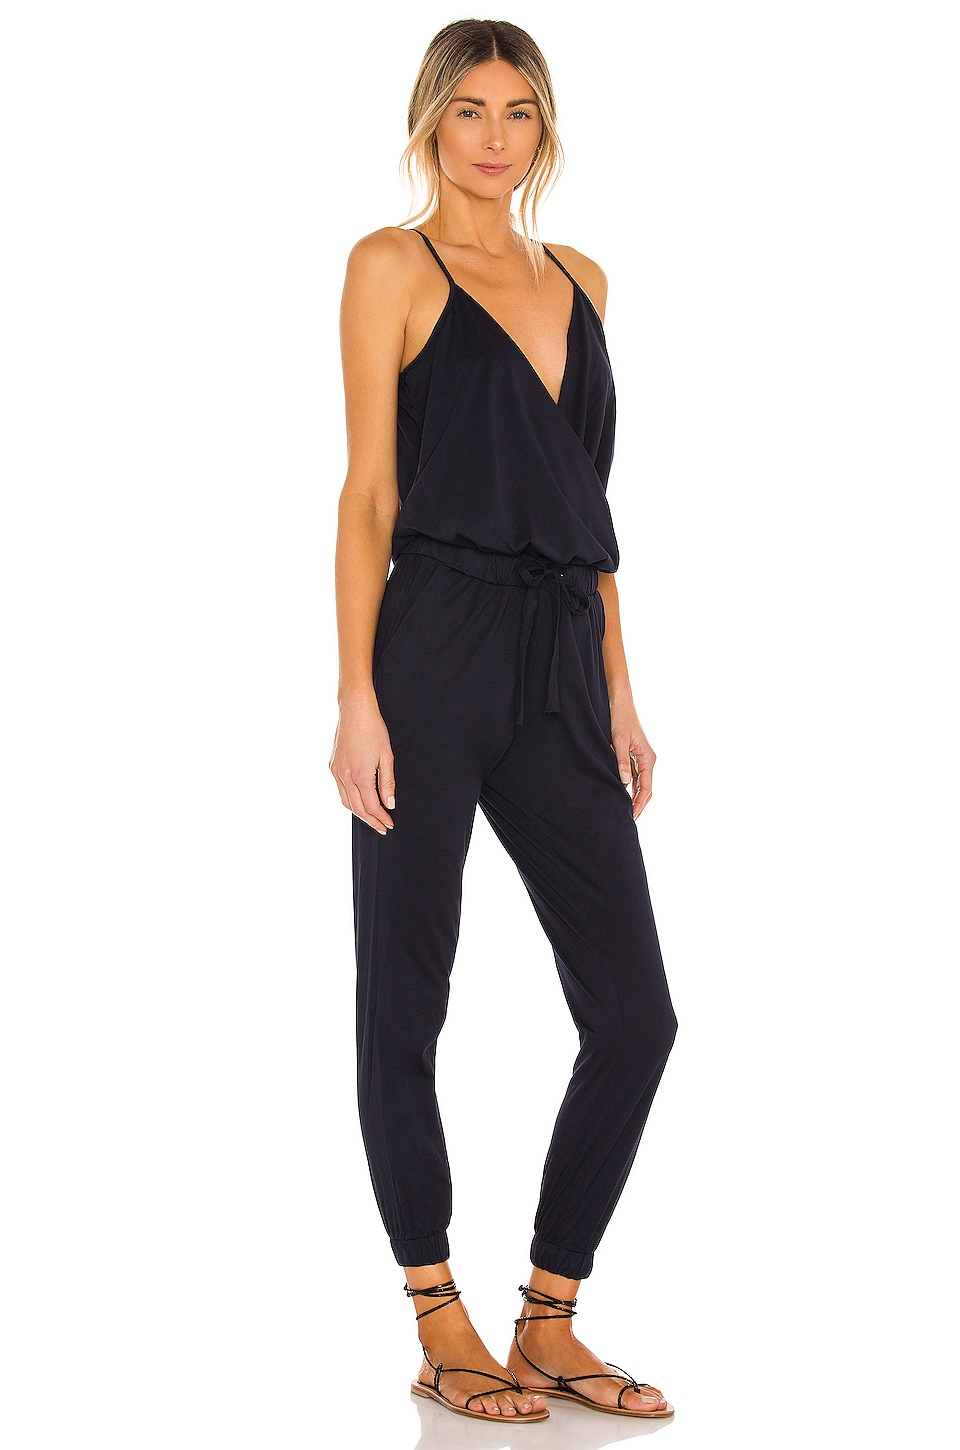 Supreme Jersey Tied Waist V Neck Jumpsuit, view 2, click to view large image.